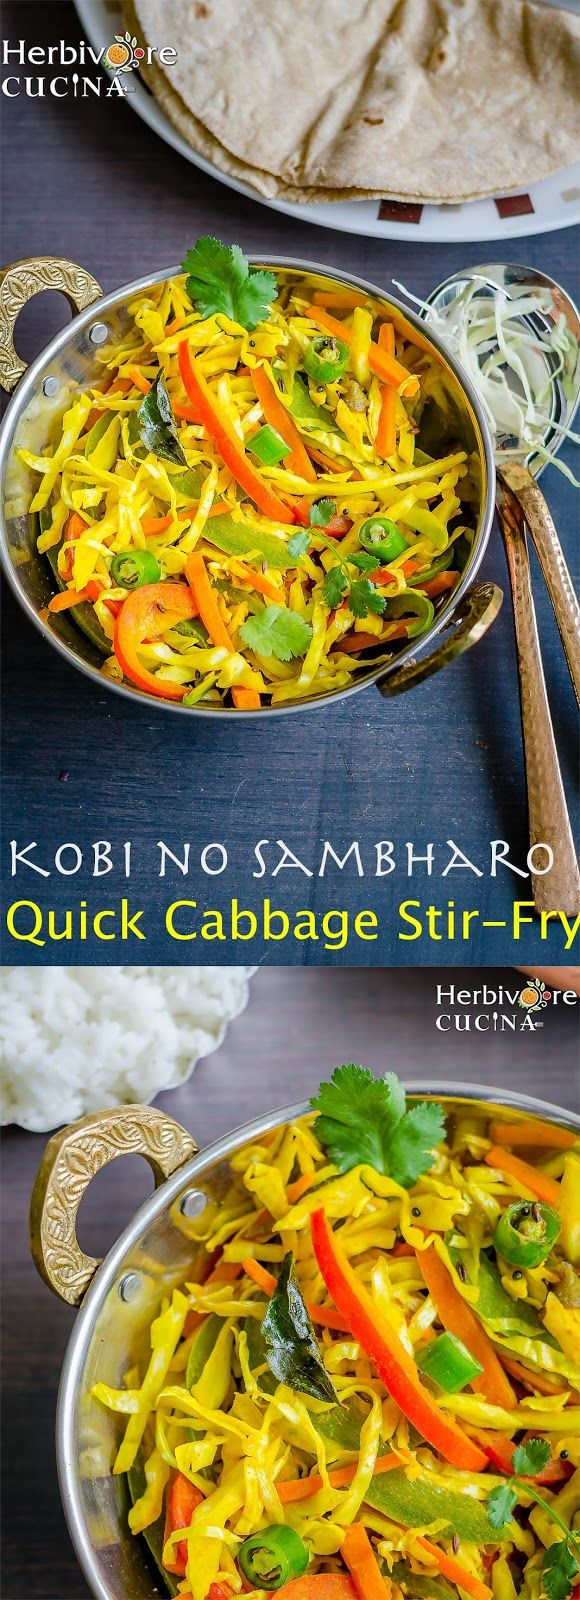 Herbivore Cucina: Kobi no Sambharo | Quick Cabbage Stir-Fry...Simple shredded cabbage is transformed into a fragrant side dish with the addition of cilantro, lime, and an array of spices including turmeric and cumin.  #CabbageStirFry #GathiyaJalebi #GobhiRecipes #GobiVegetable #GujaratiBreakfast #GujaratiCuisine #IndianCooking #KobiNoSambharo #QuickStirFries #VeganMainDishes